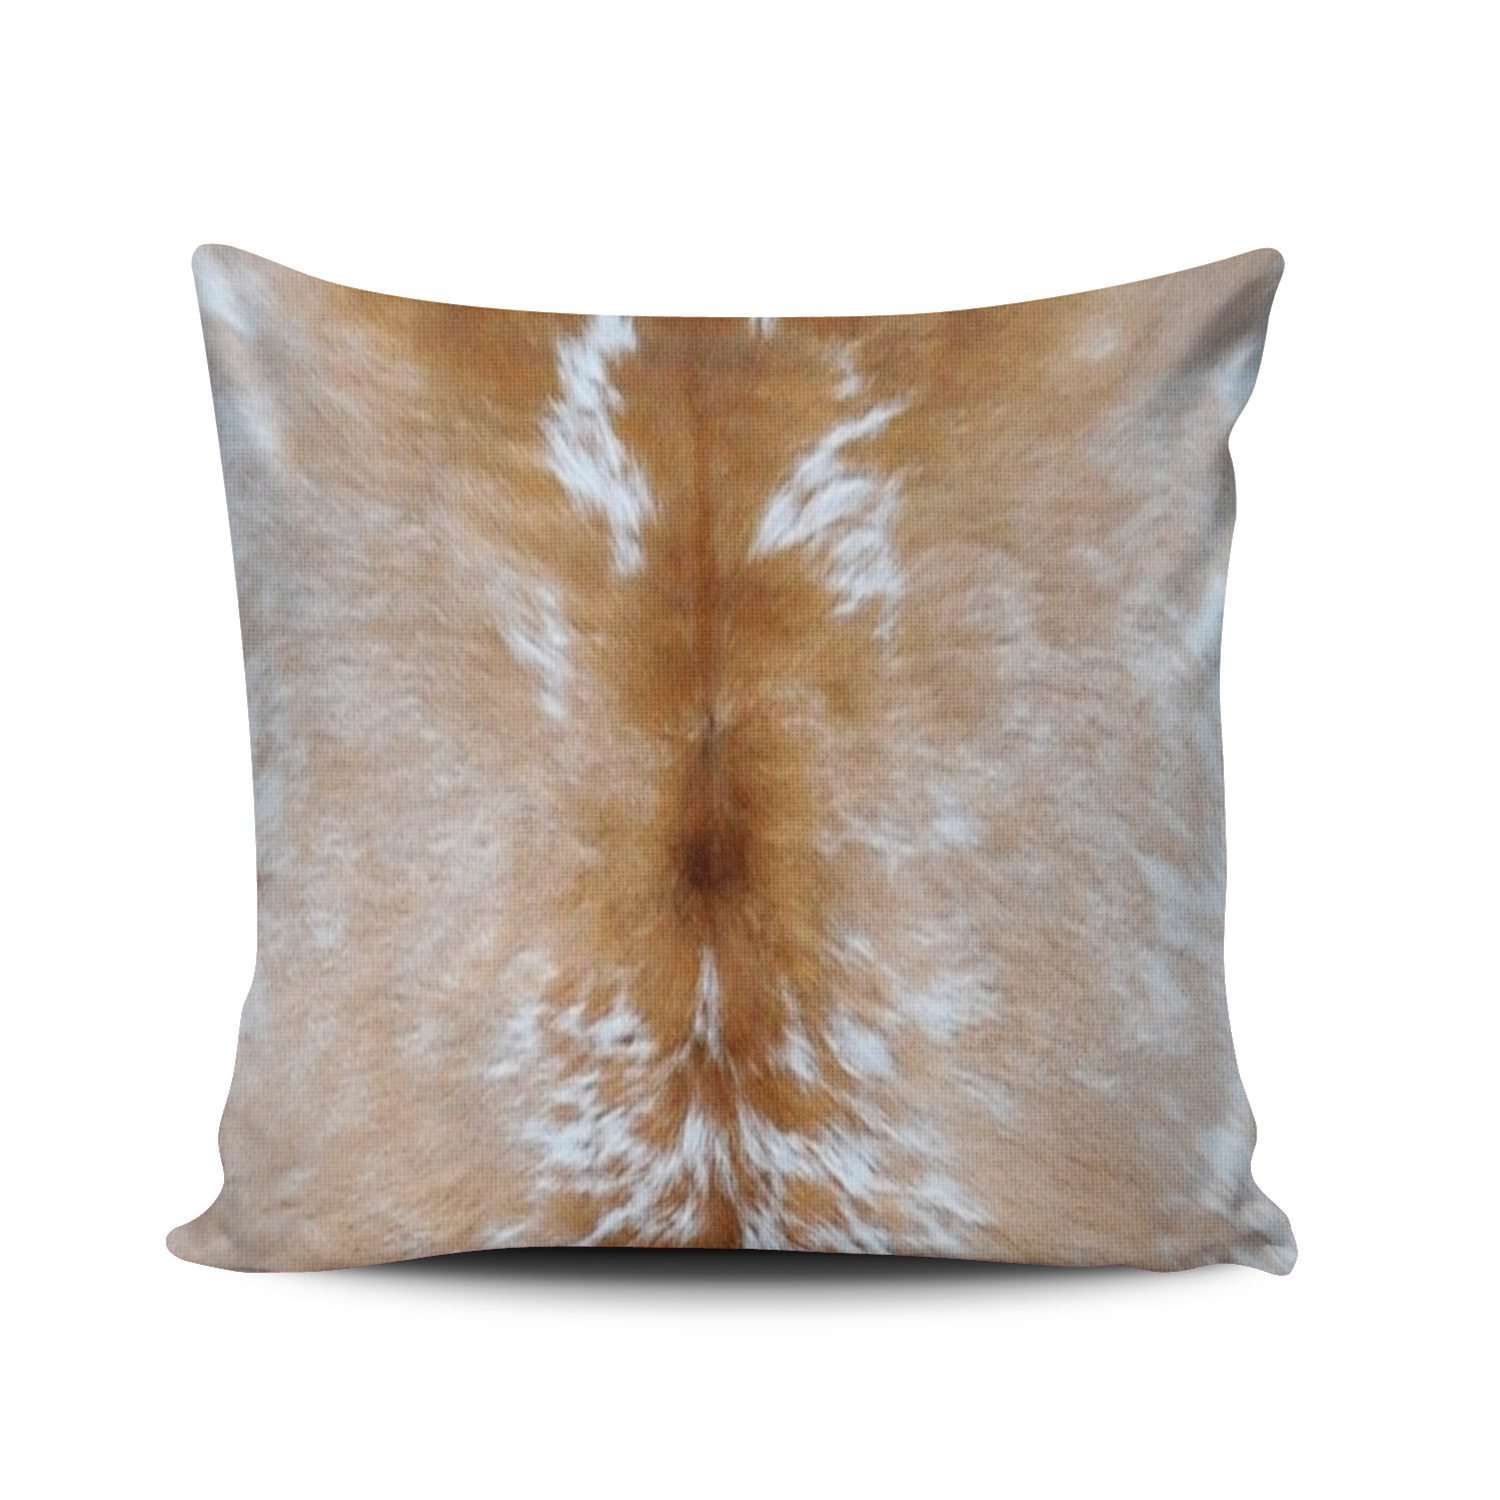 KEIBIKE Pillow Case Animal Hide Skin Spotted Brown White Cow Personalized Pillowcases Cute Decorative Throw Pillow Covers Cases Euro Square 26x26 Inches by KEIBIKE